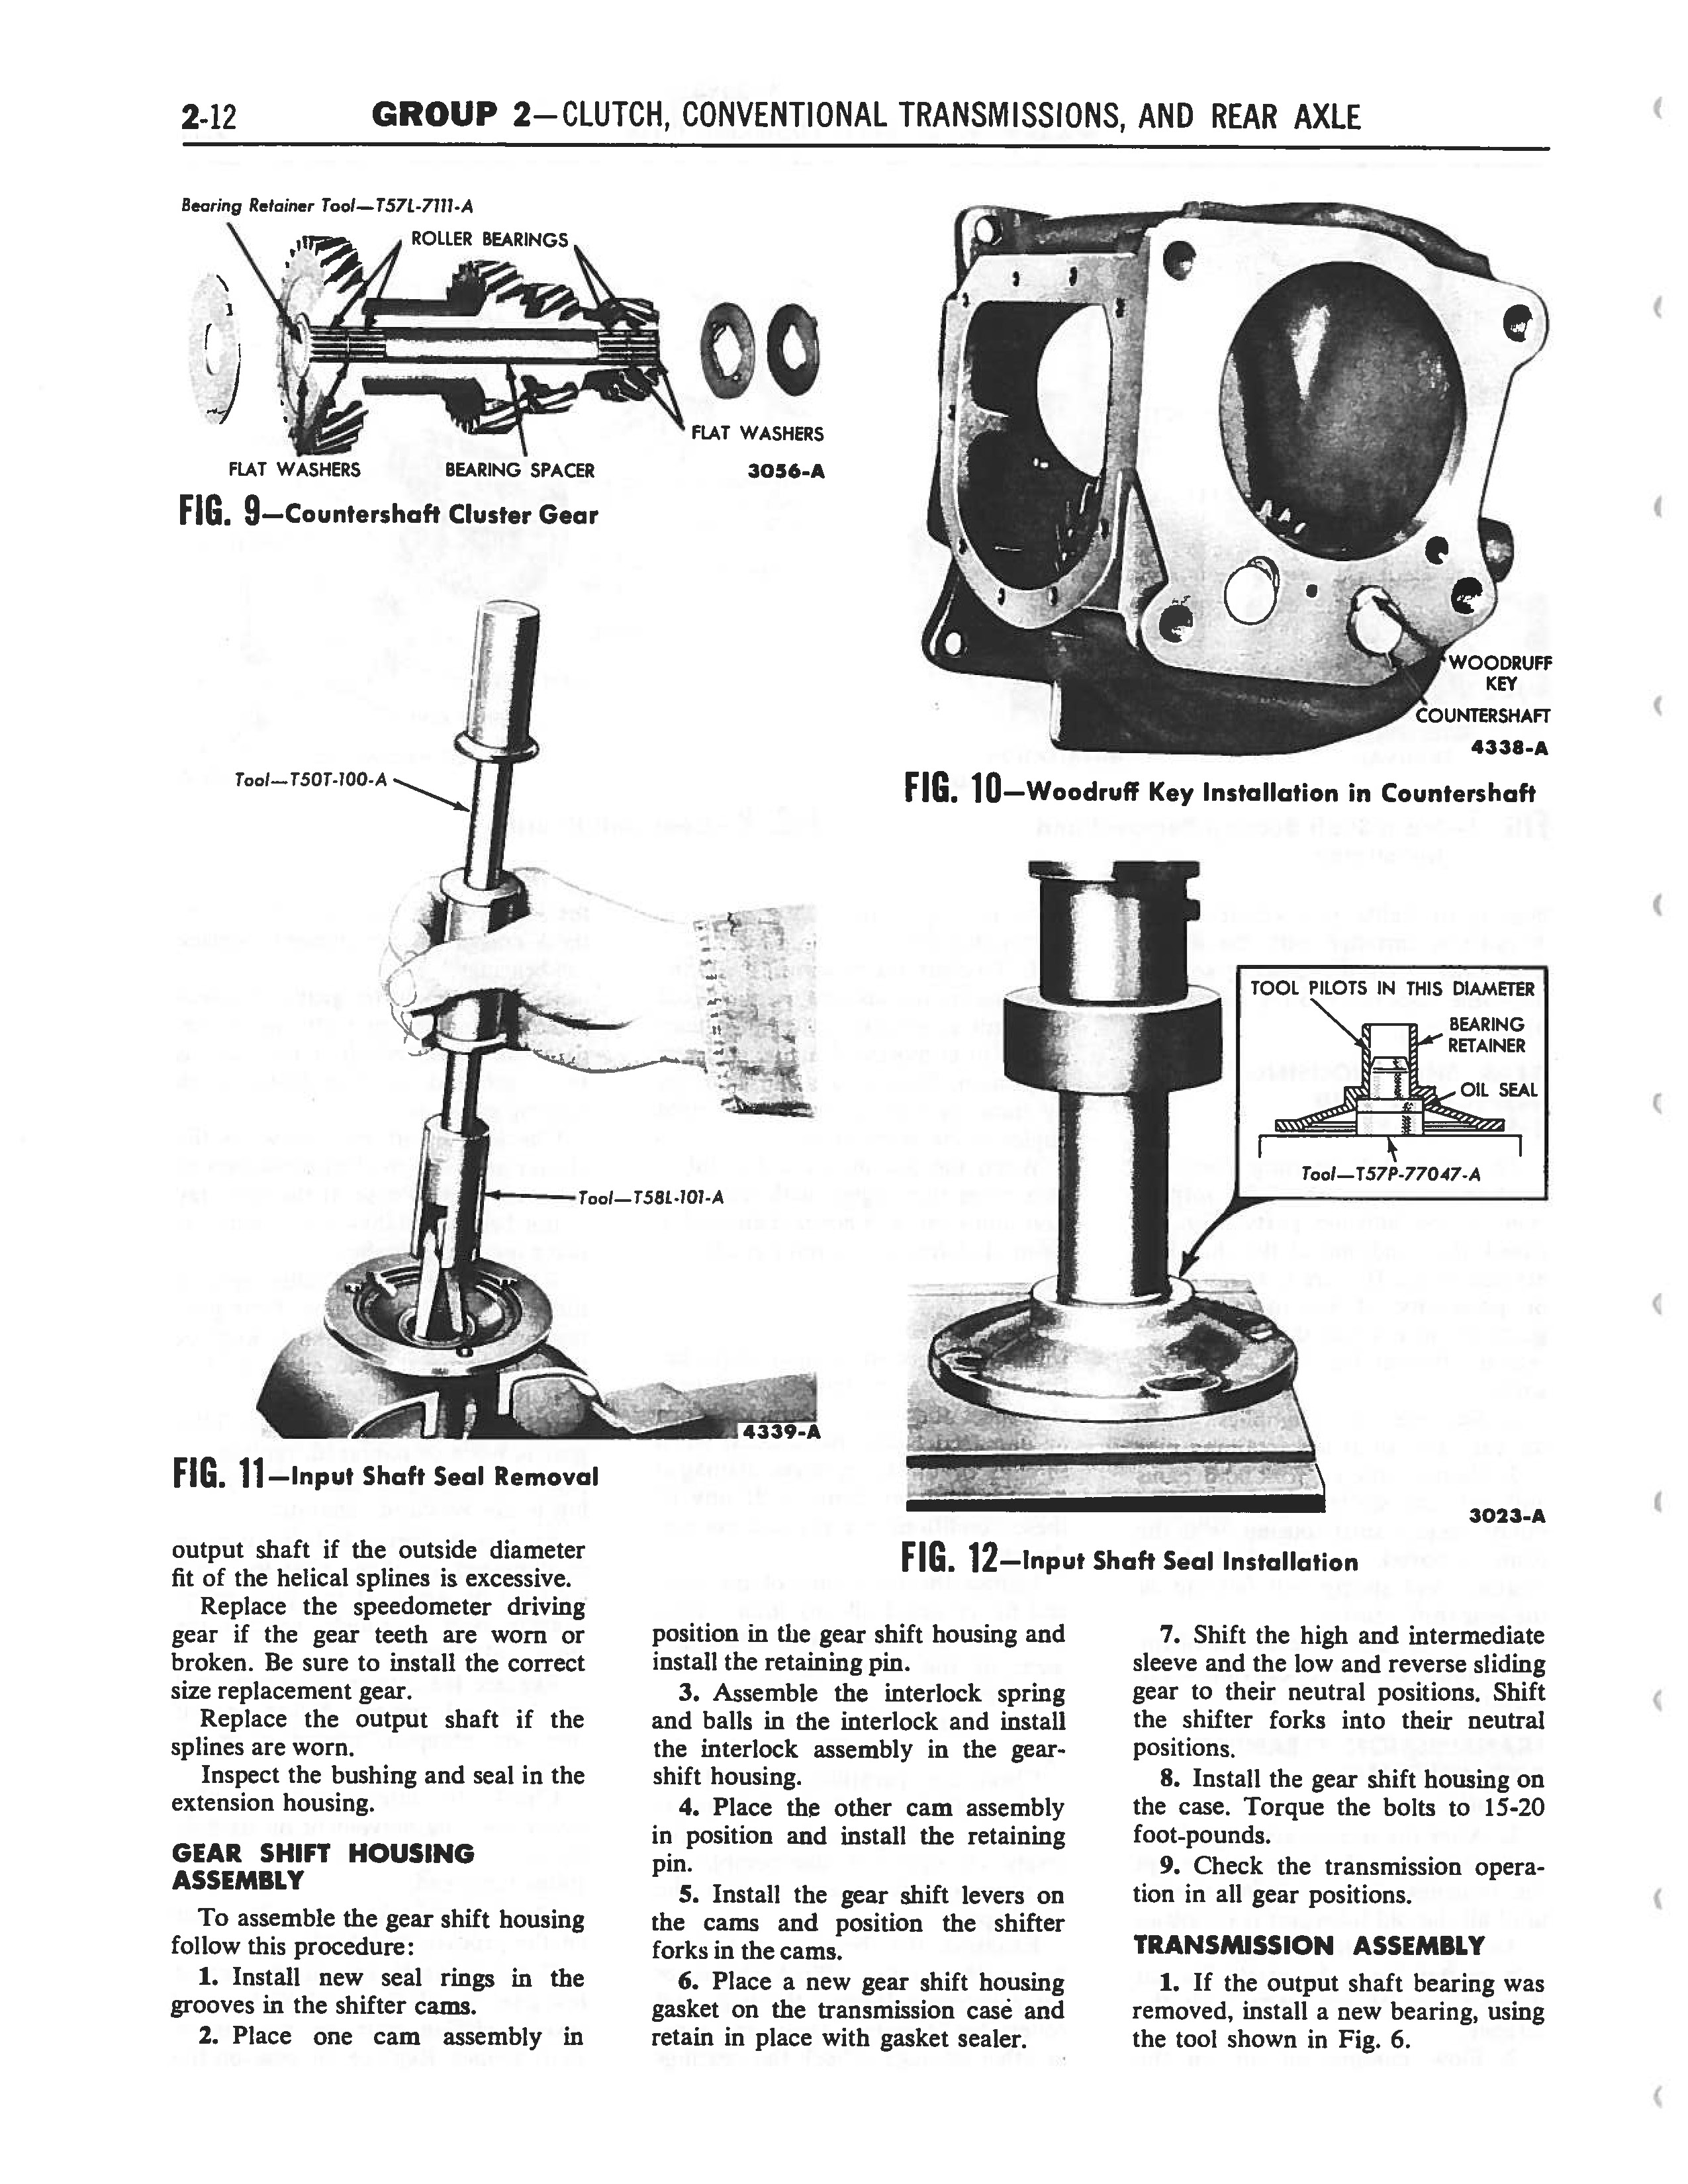 1958 Ford Thunderbird Shop Manual page 98 of 360